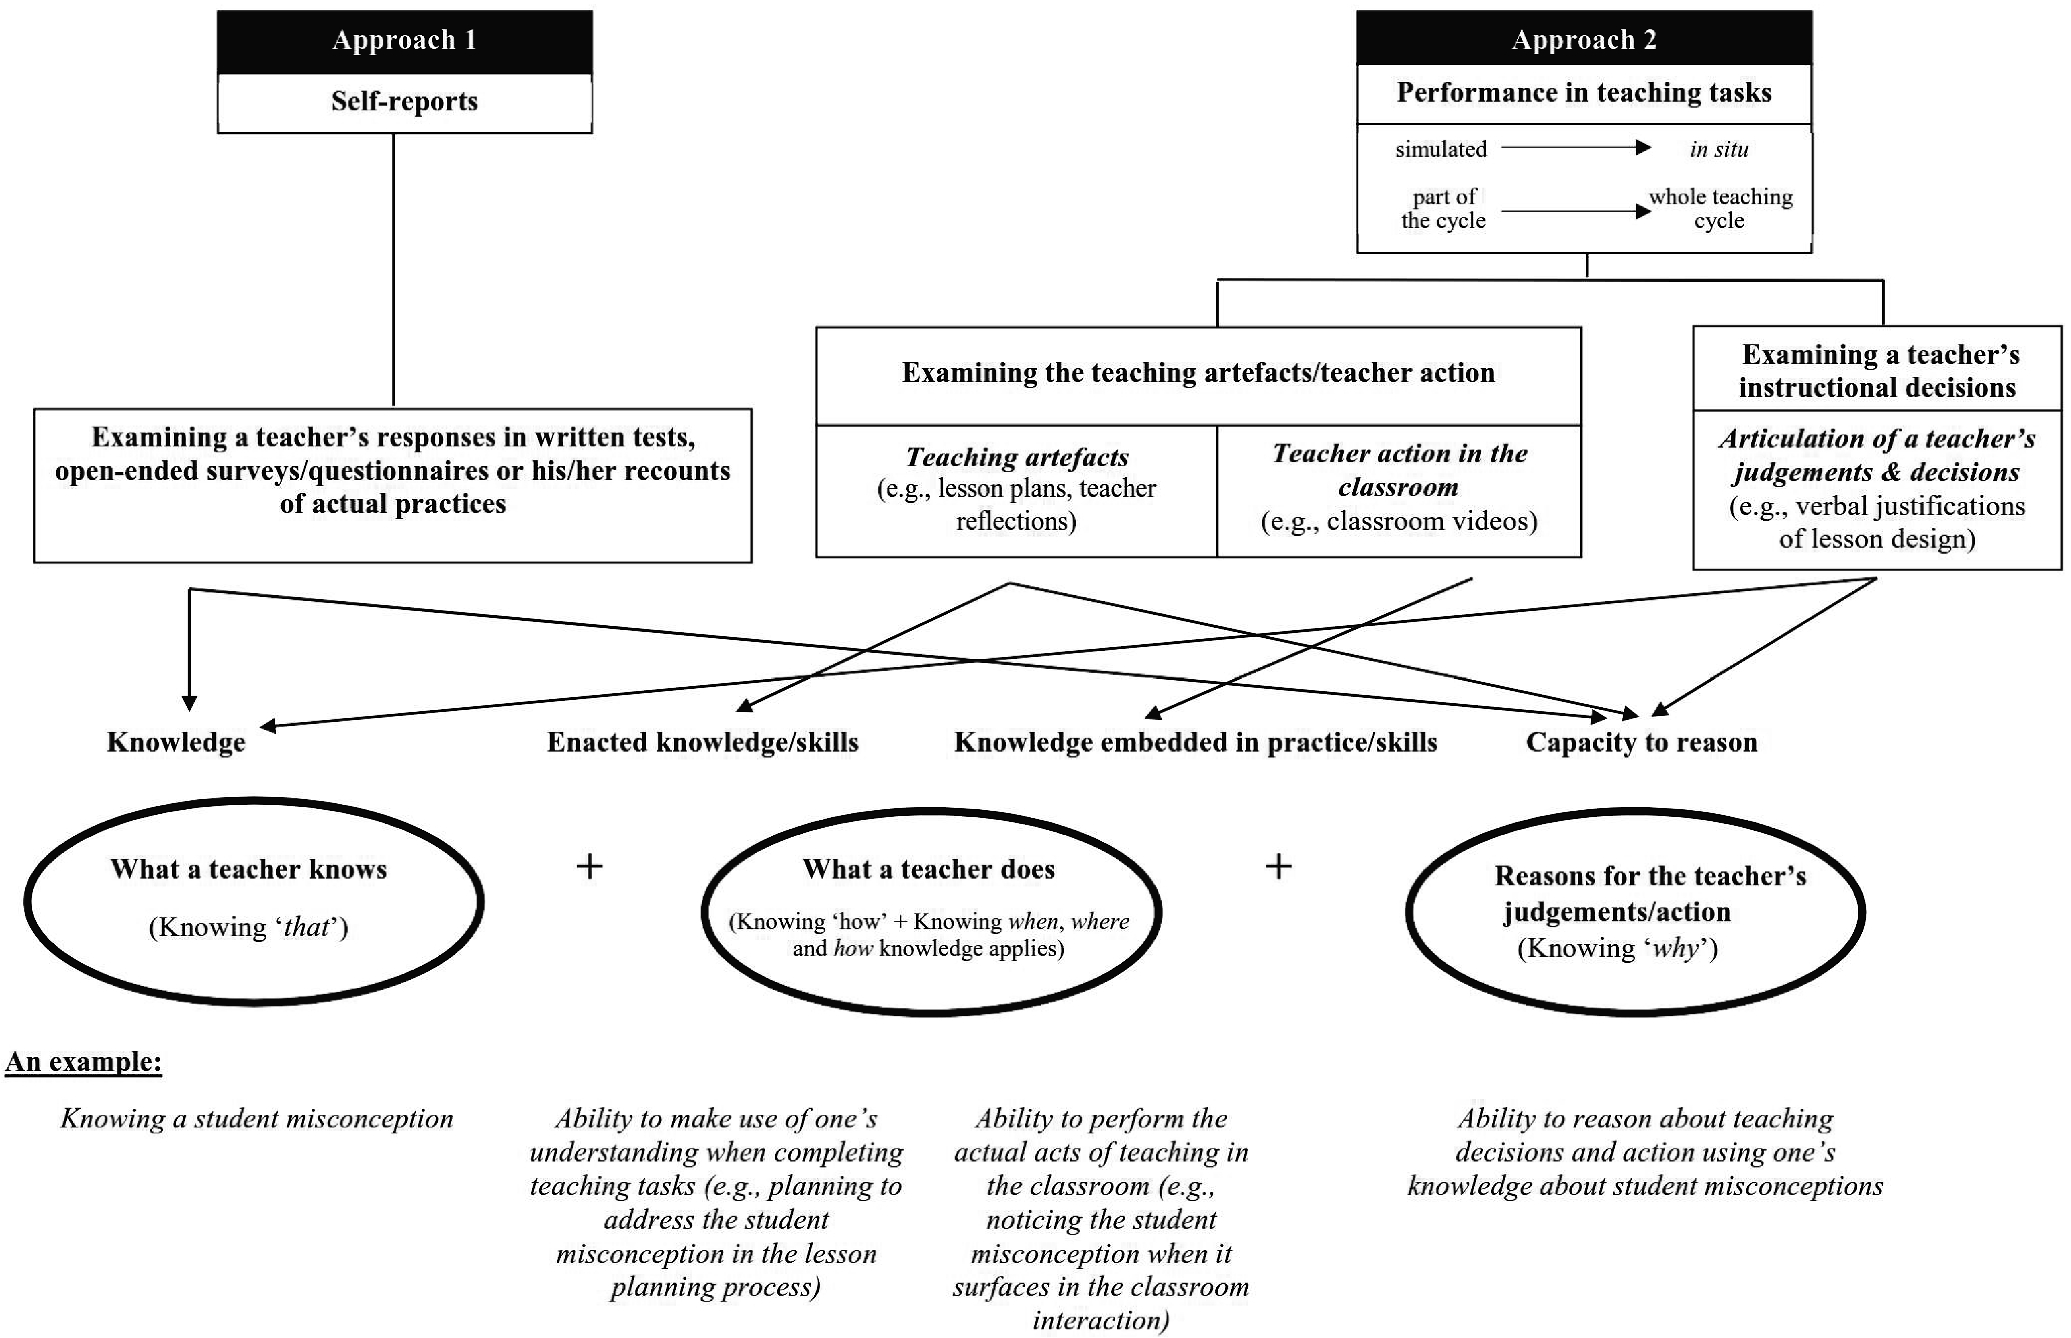 Towards a Consensus Model: Literature Review of How Science Teachers